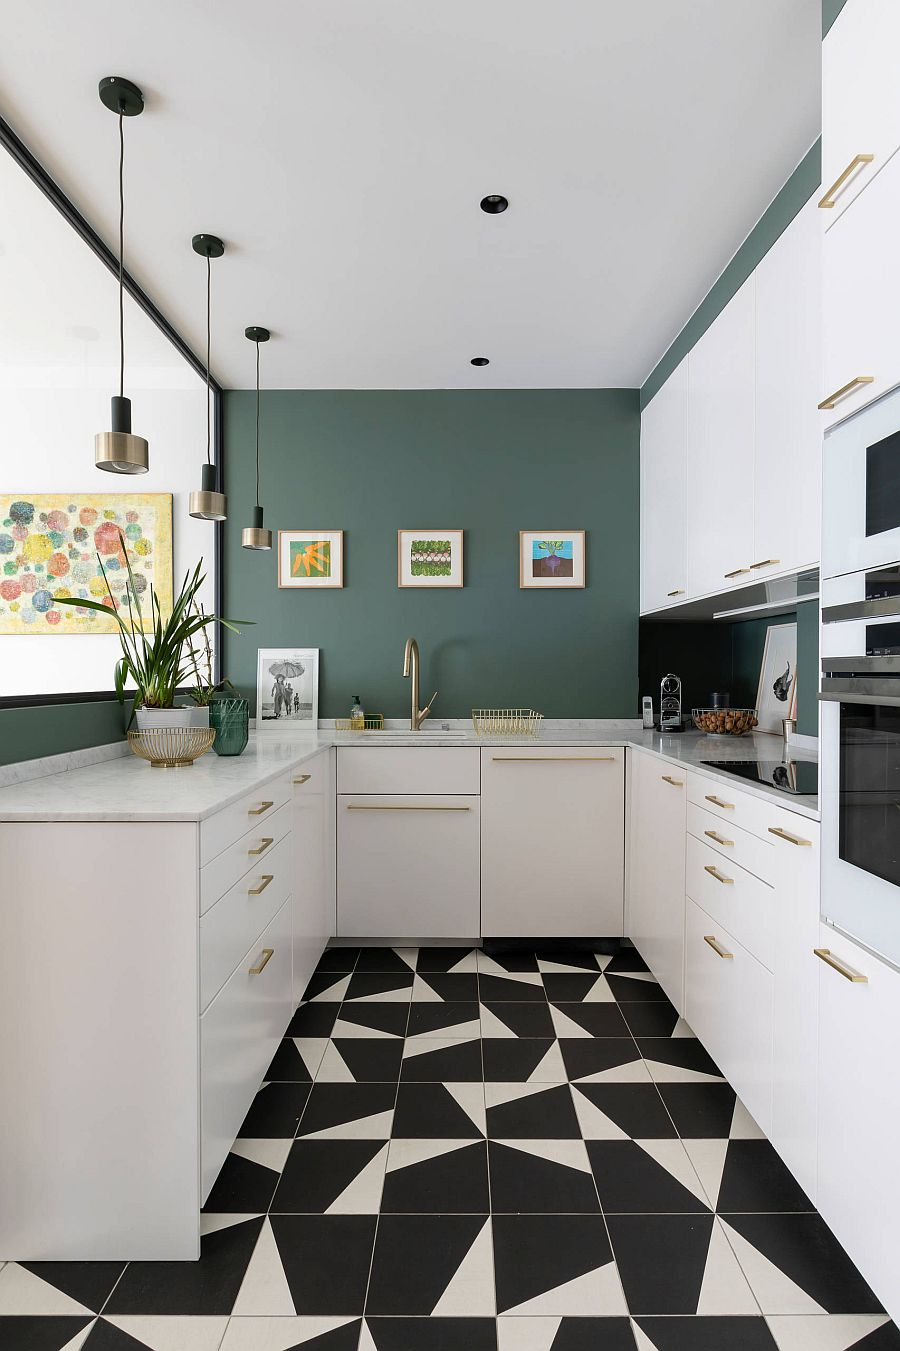 Geometric-charm-color-and-metallic-dazzle-add-to-the-appeal-of-the-small-white-kitchen